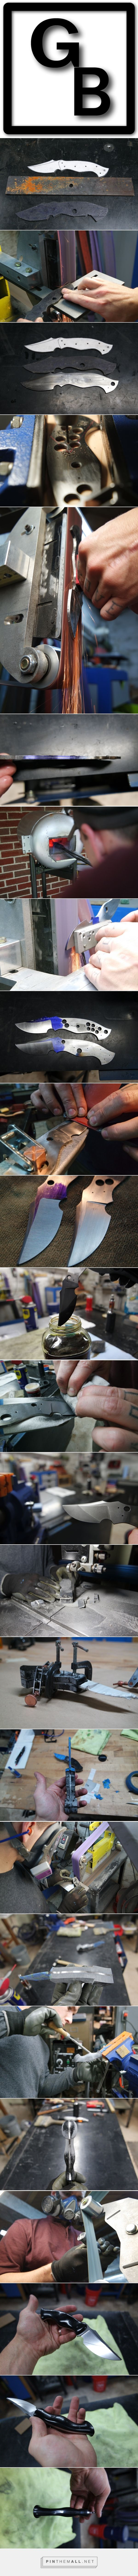 -Güth Blades- The Making Of My Xenon Model Check Out More Knifemaking @GuthBlades.com Or Follow Me on Instagram, Facebook & Twitter.